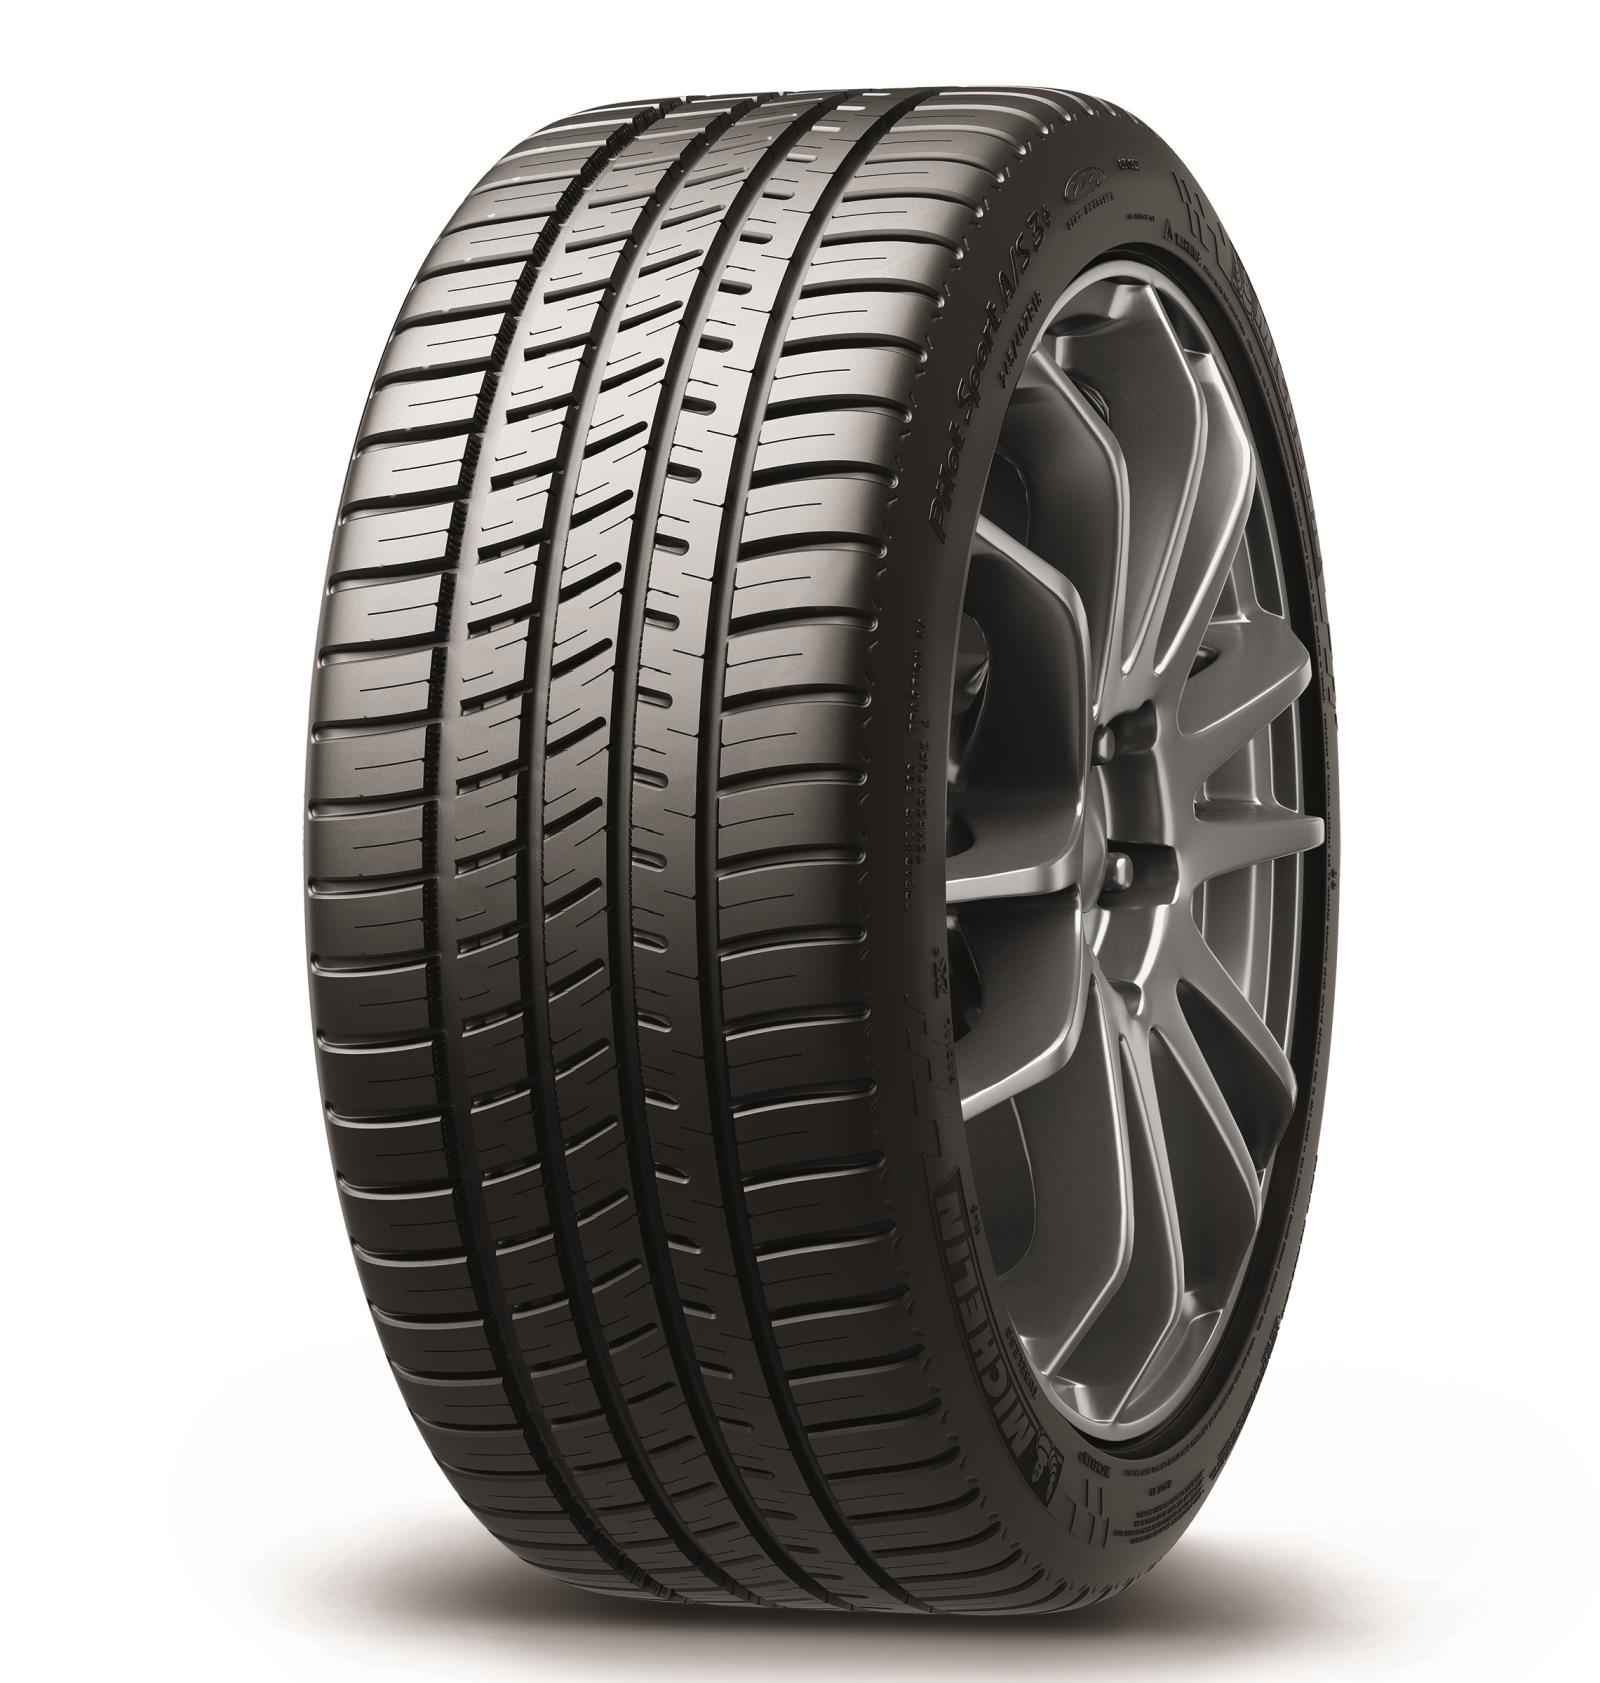 Michelin Pilot Sport >> Right Wheel Drive: Long Term Tire Test: Michelin Pilot Sport A/S 3+